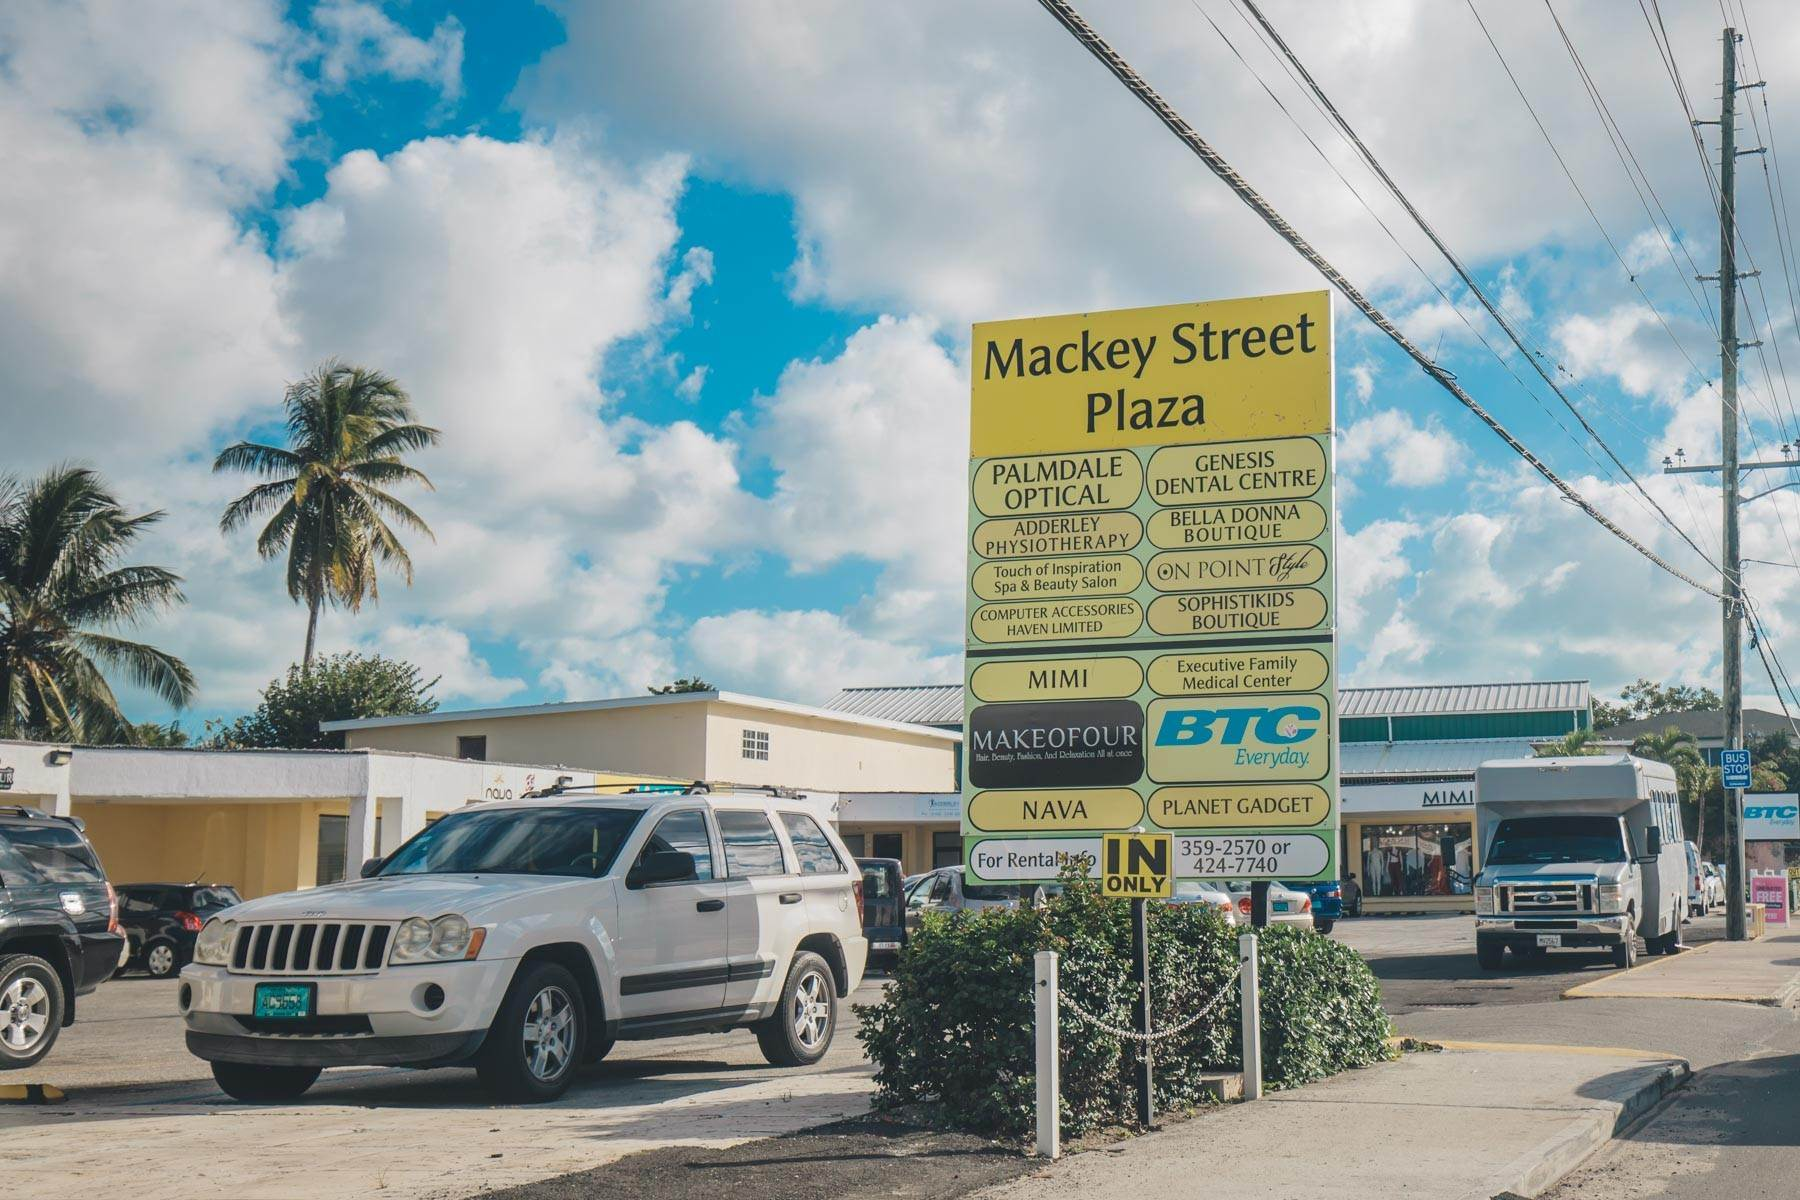 Commercial for Rent at Prime Commercial Property, Mackey Street Plaza Unit 14 Palmdale, Nassau And Paradise Island, Bahamas